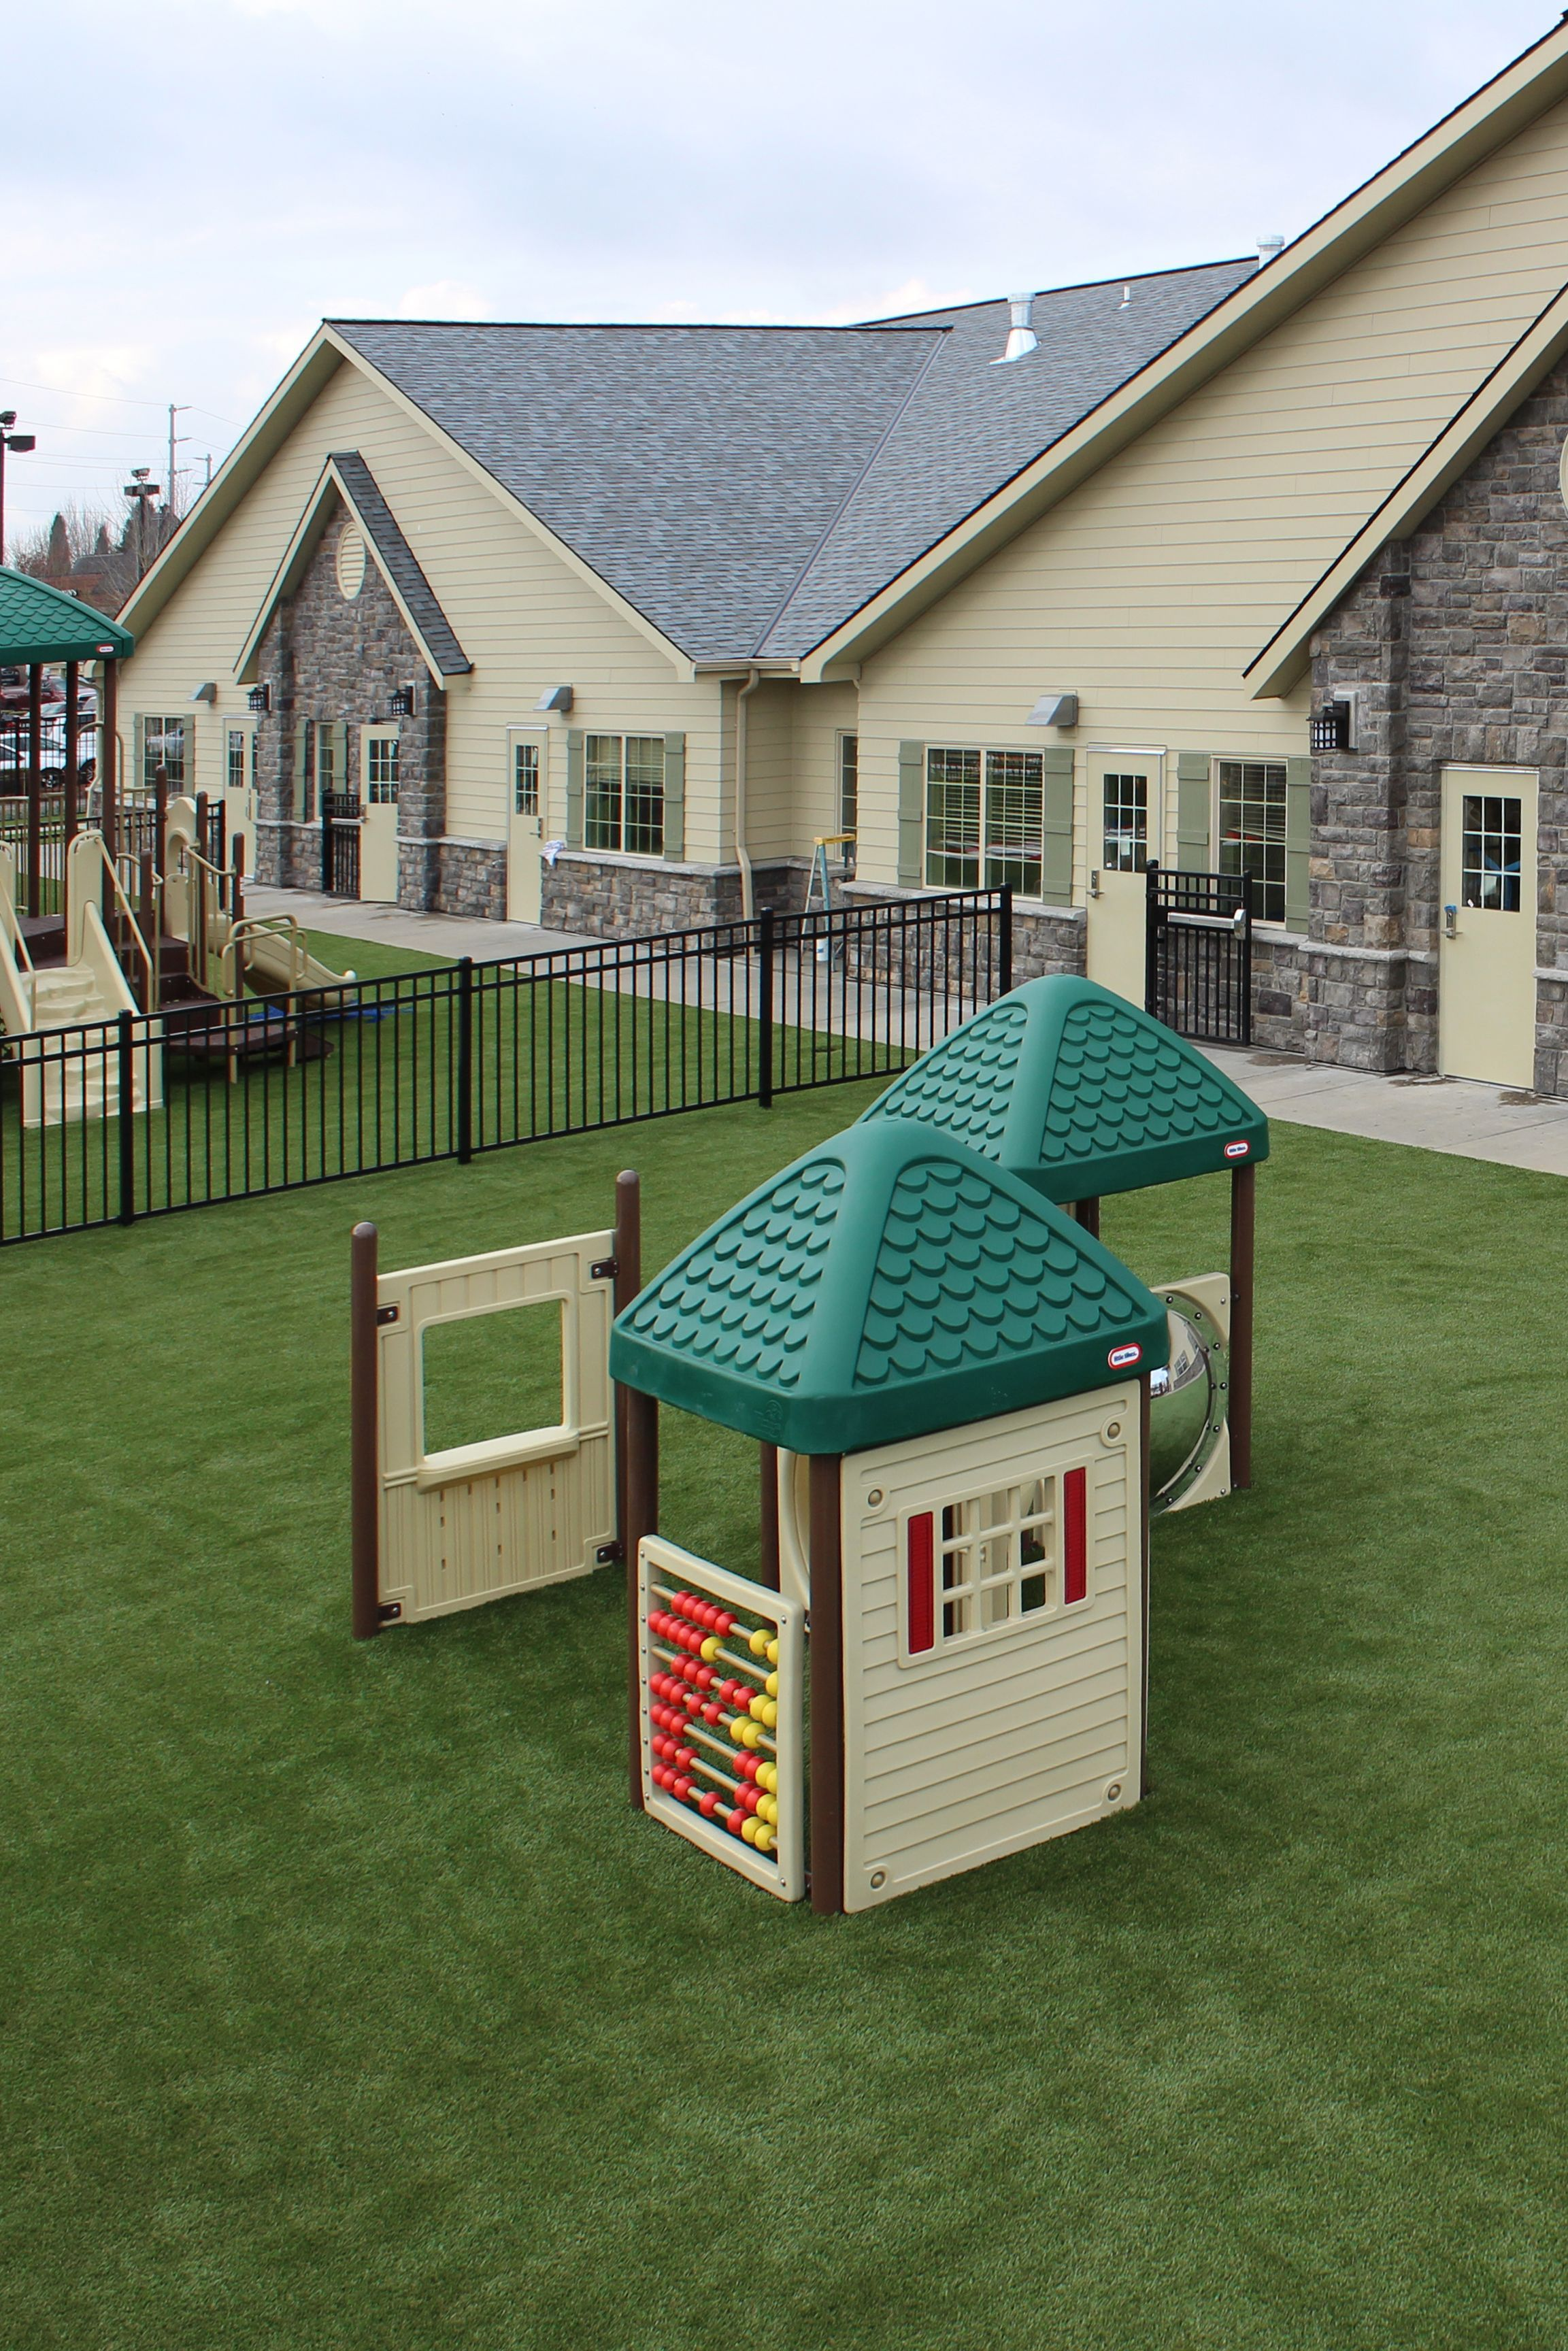 Primrose Schools have teamed up with ForeverLawn to create